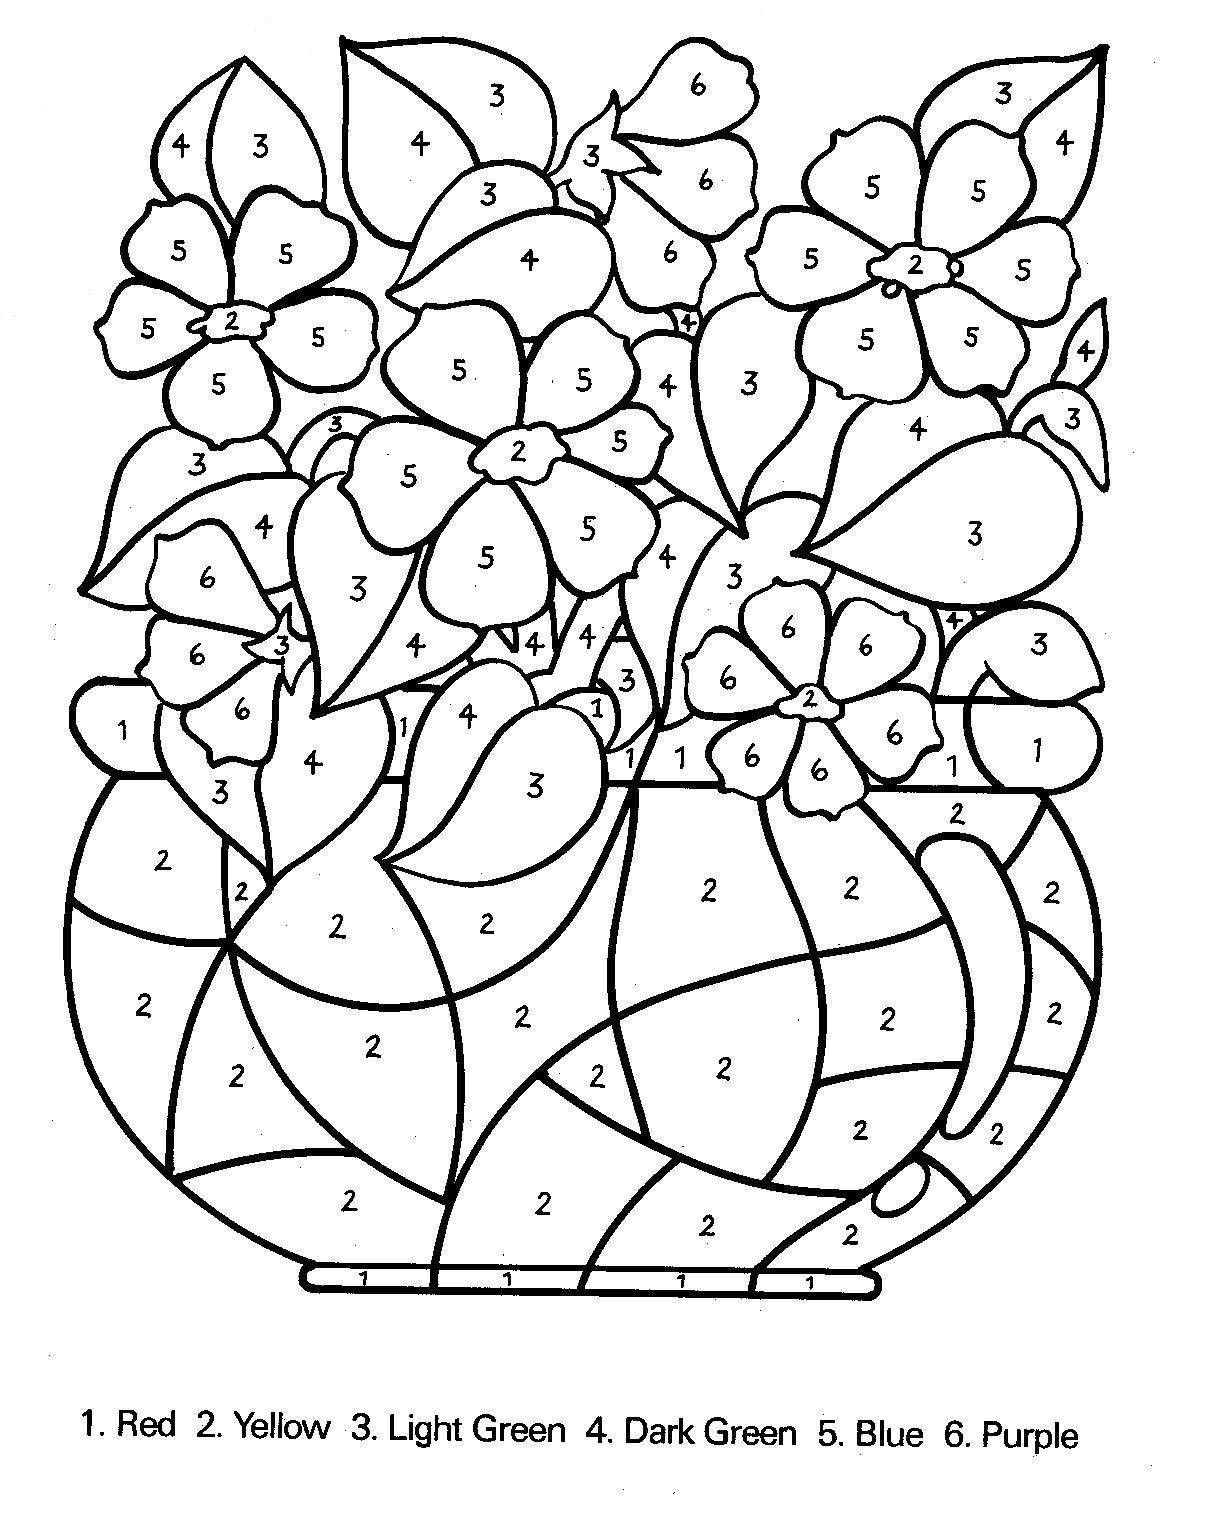 coloring pages for kids printable numbers - Color Patterns For Kids